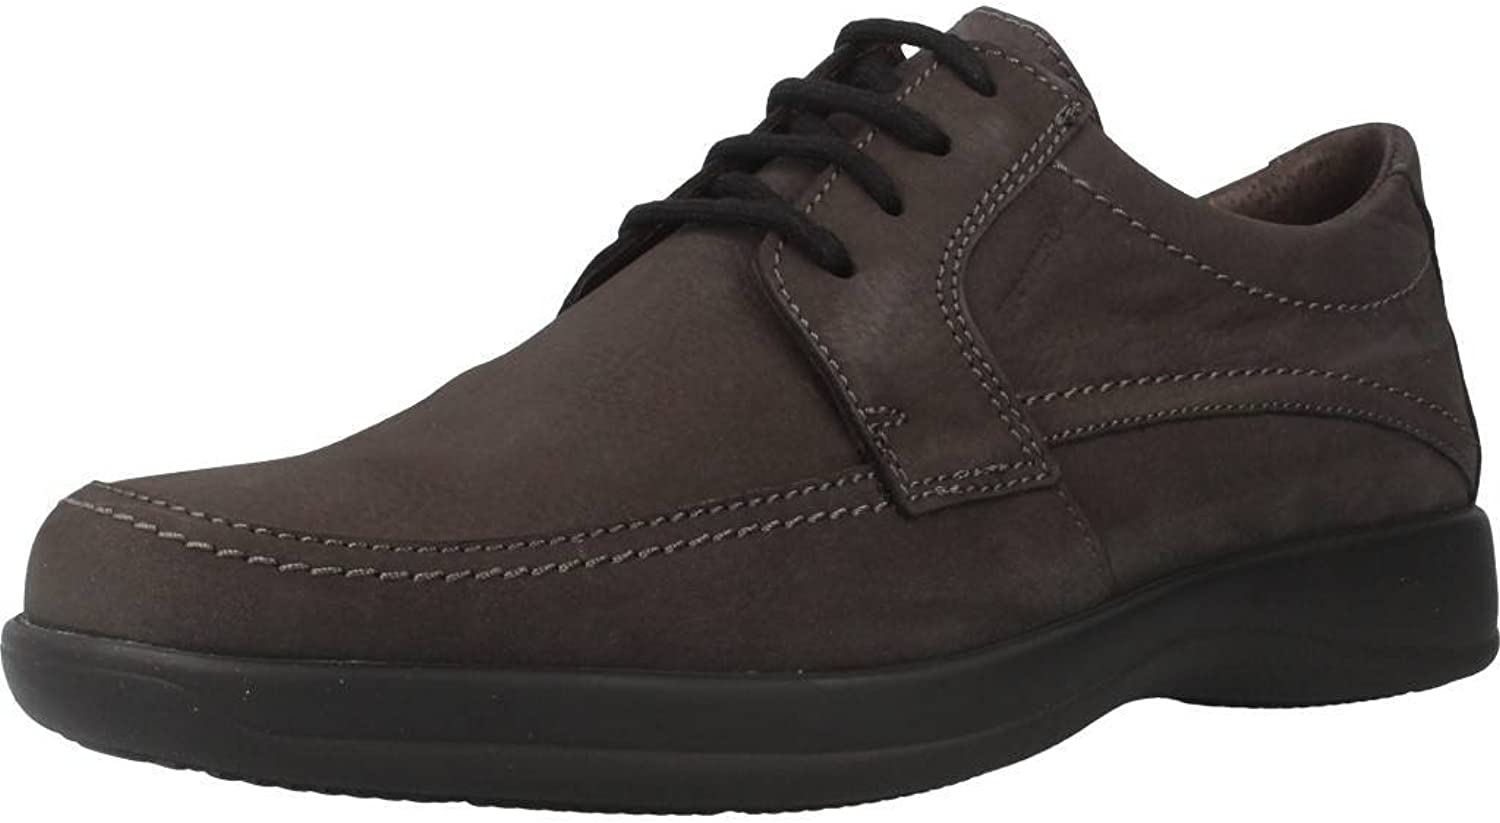 Stonefly Casual shoes for Men, Colour Brown, Brand, Model Casual shoes for Men Season III 2 Brown